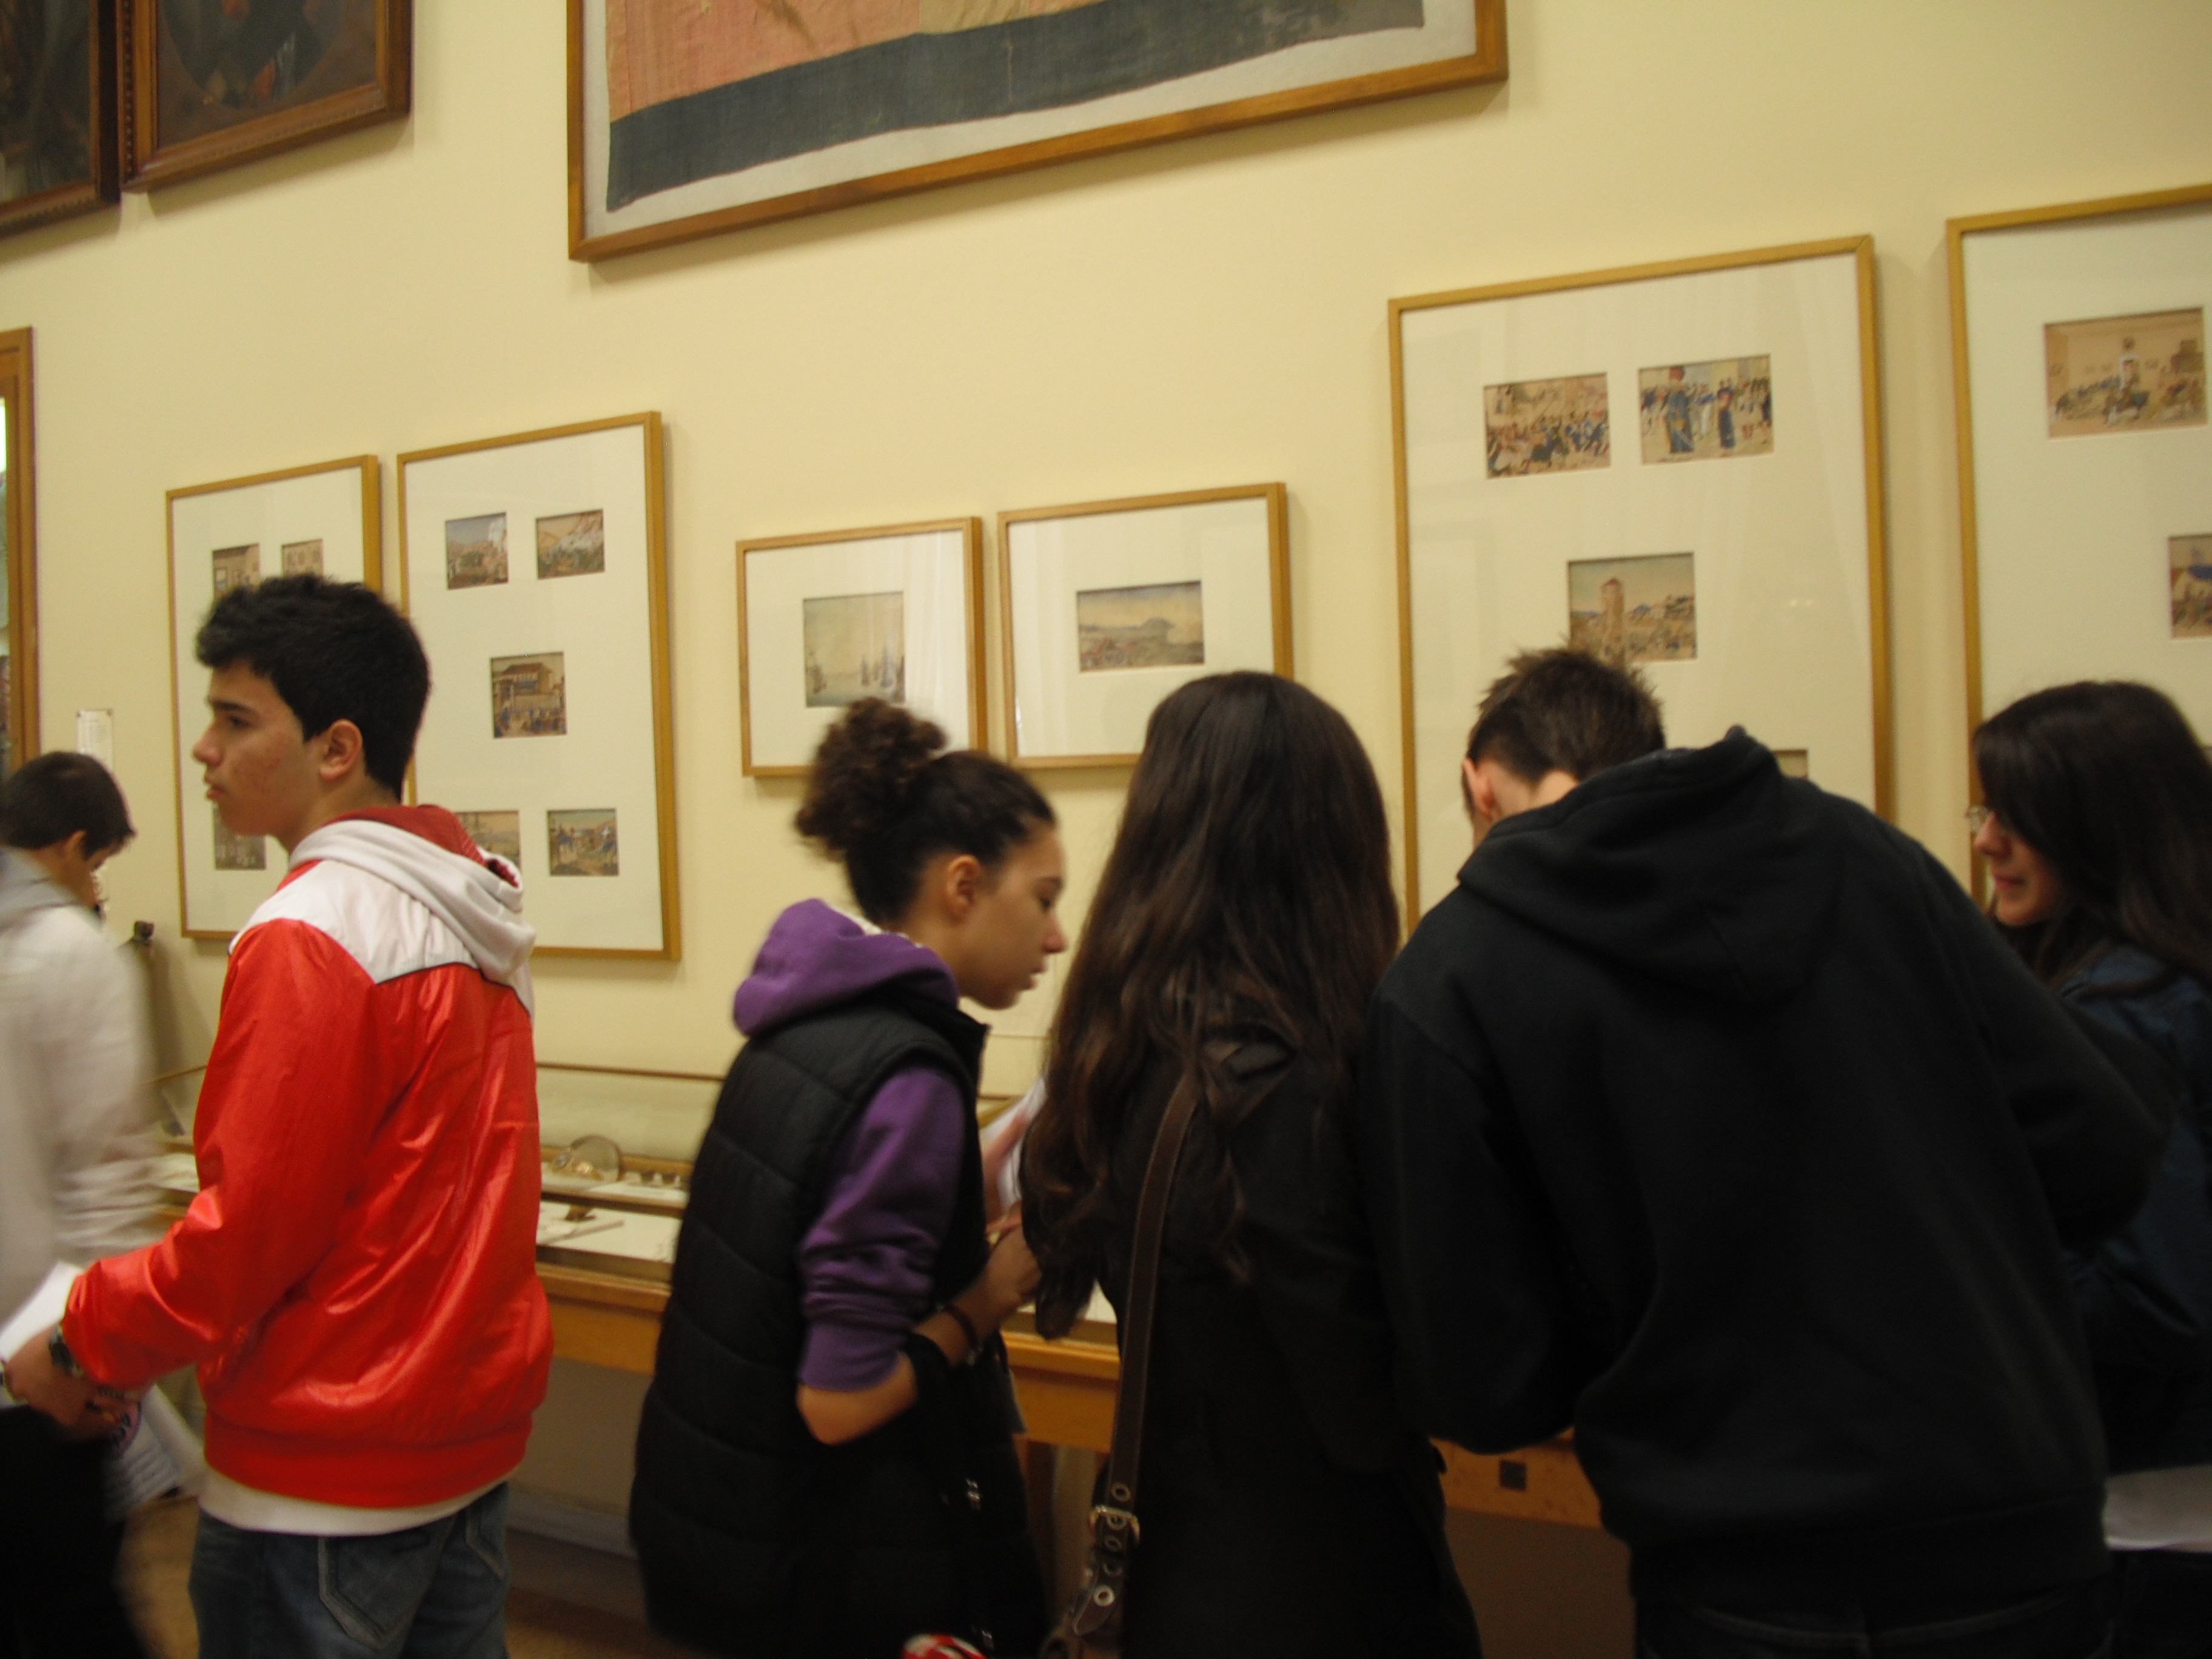 MUSEUM-HISTORICAL-30-11-2012